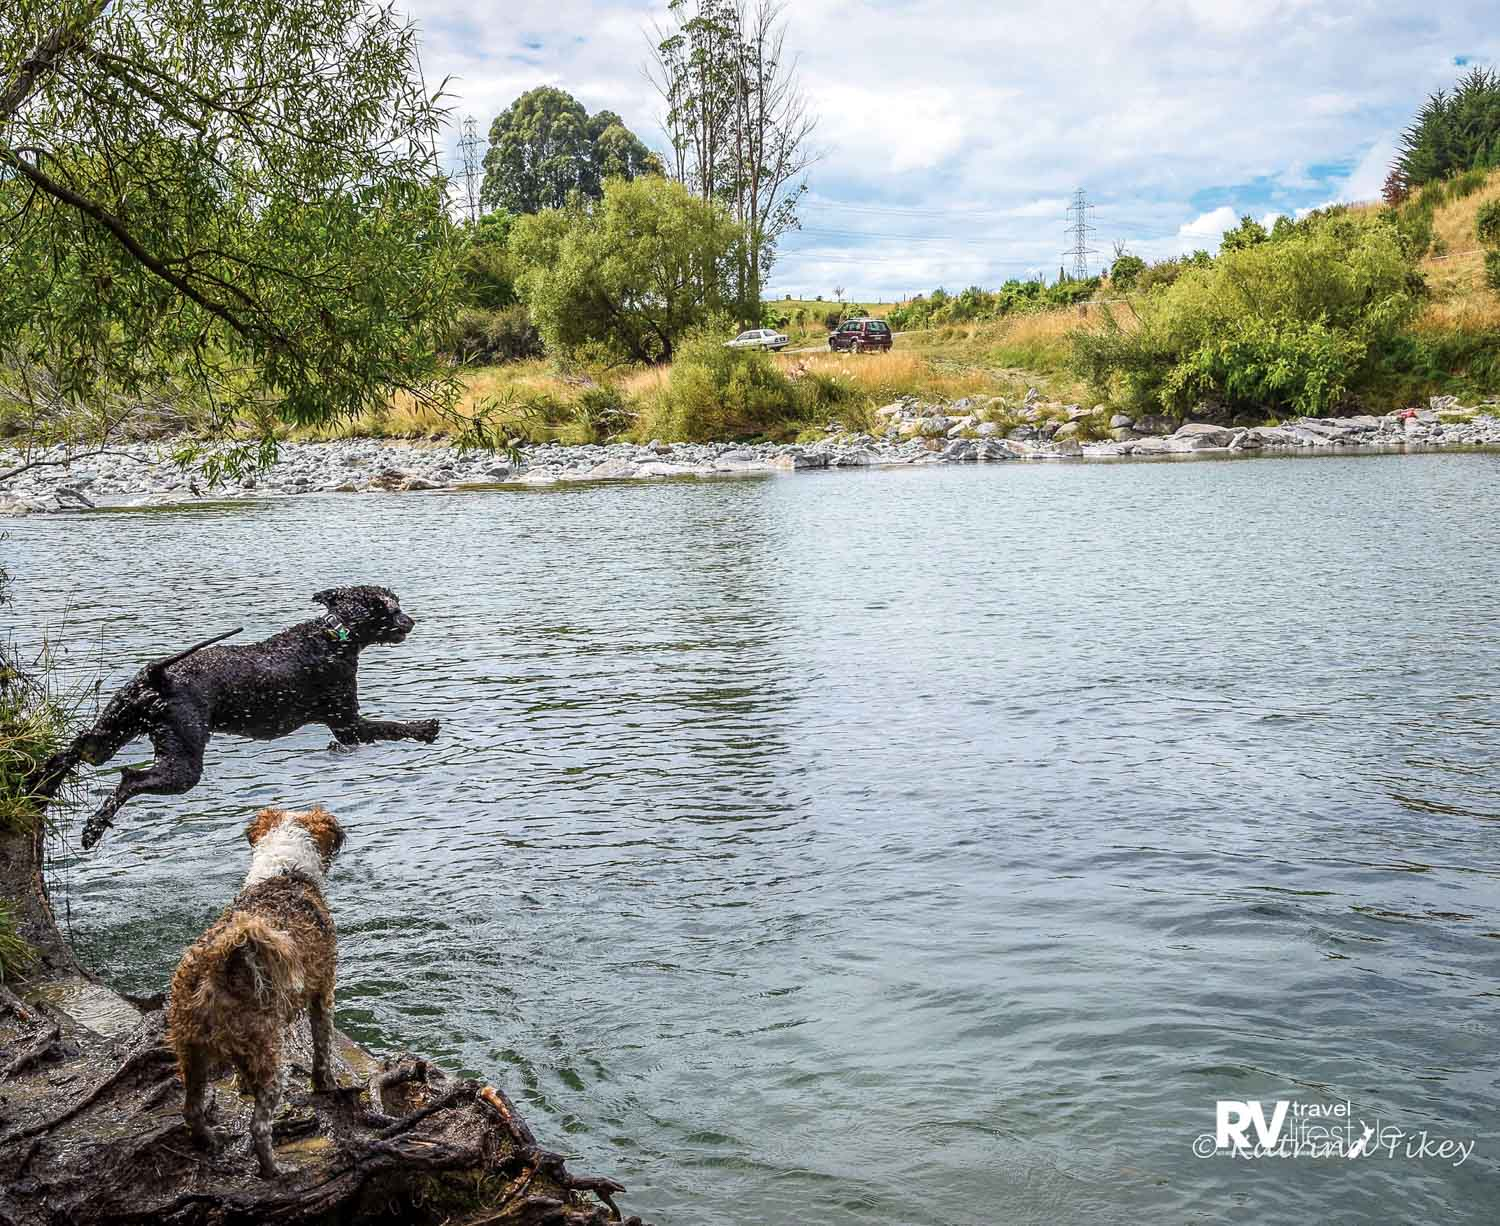 Life on the road means new swimming holes to try out. And time for Paddy to practise his diving